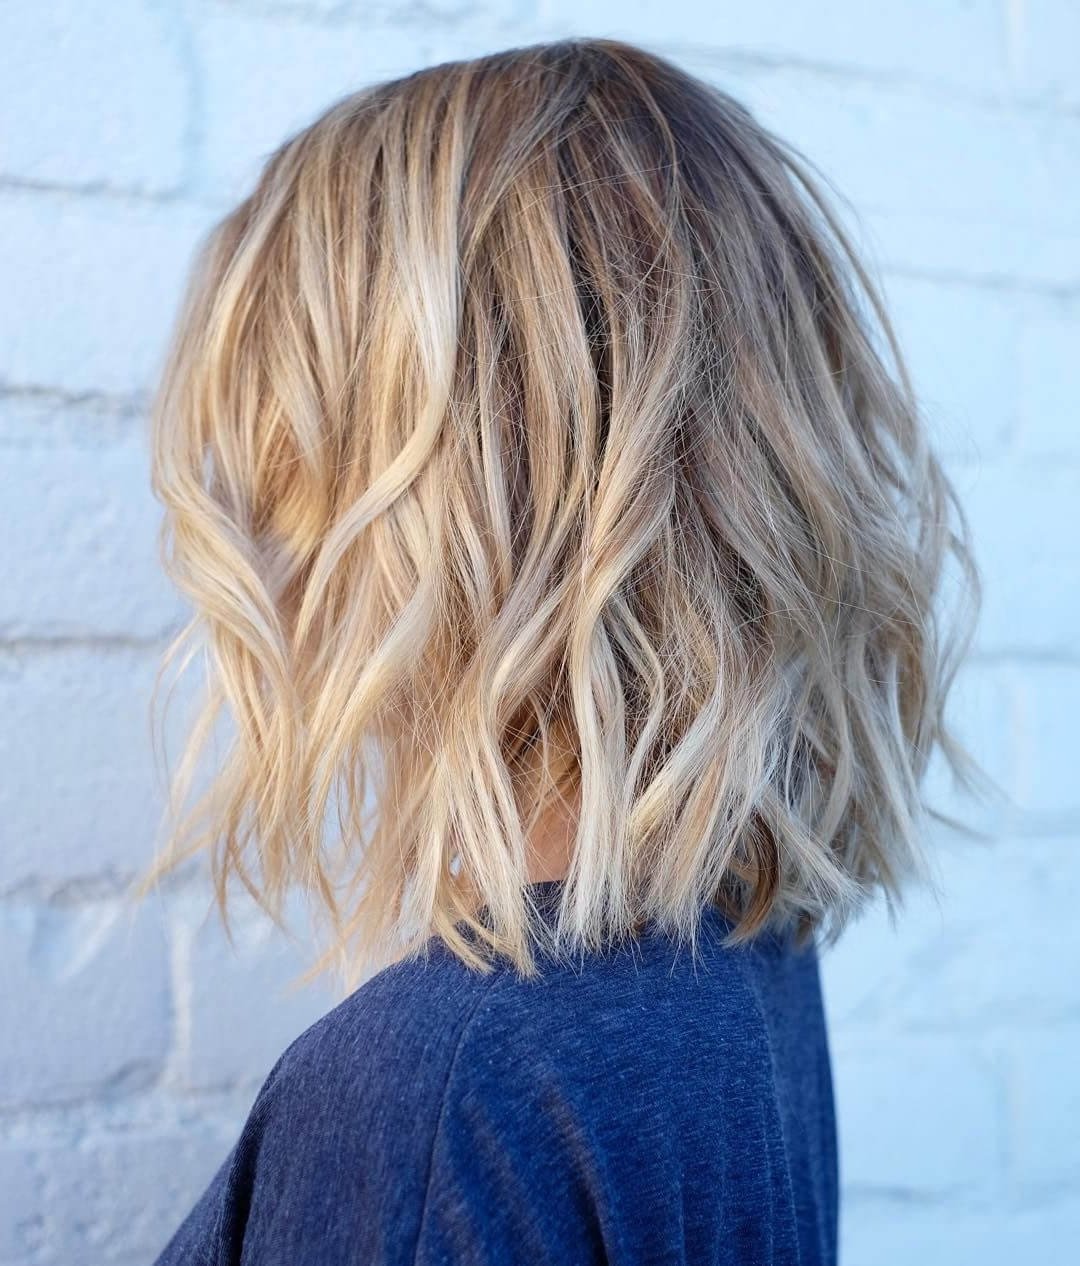 50 Fresh Short Blonde Hair Ideas To Update Your Style In 2018 Regarding Famous Shaggy Pixie Hairstyles With Balayage Highlights (View 5 of 20)